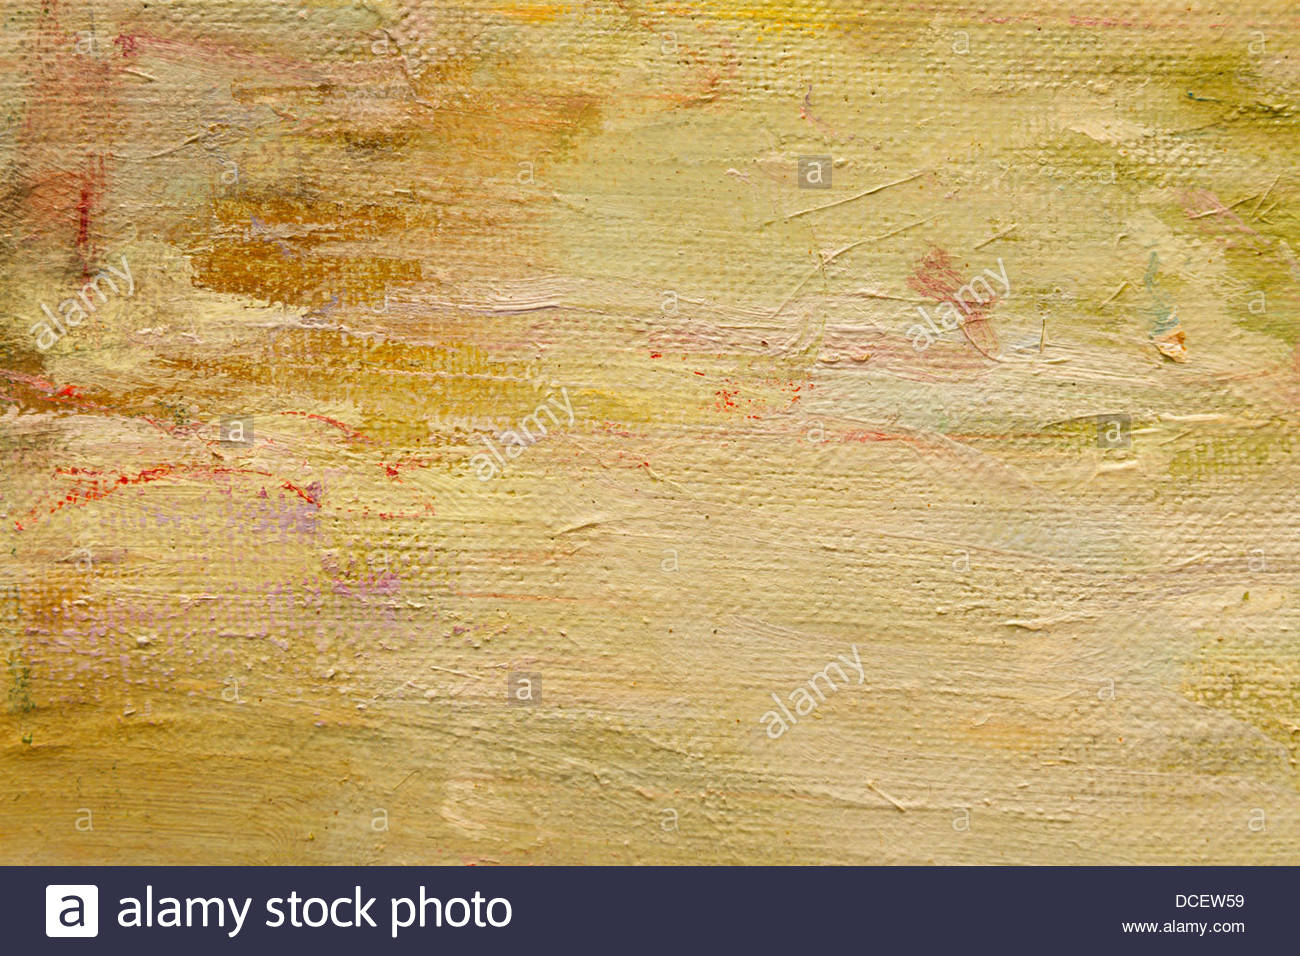 Abstract Wallpaper Of Oil Painting With Brush Strokes In Pastel Colors